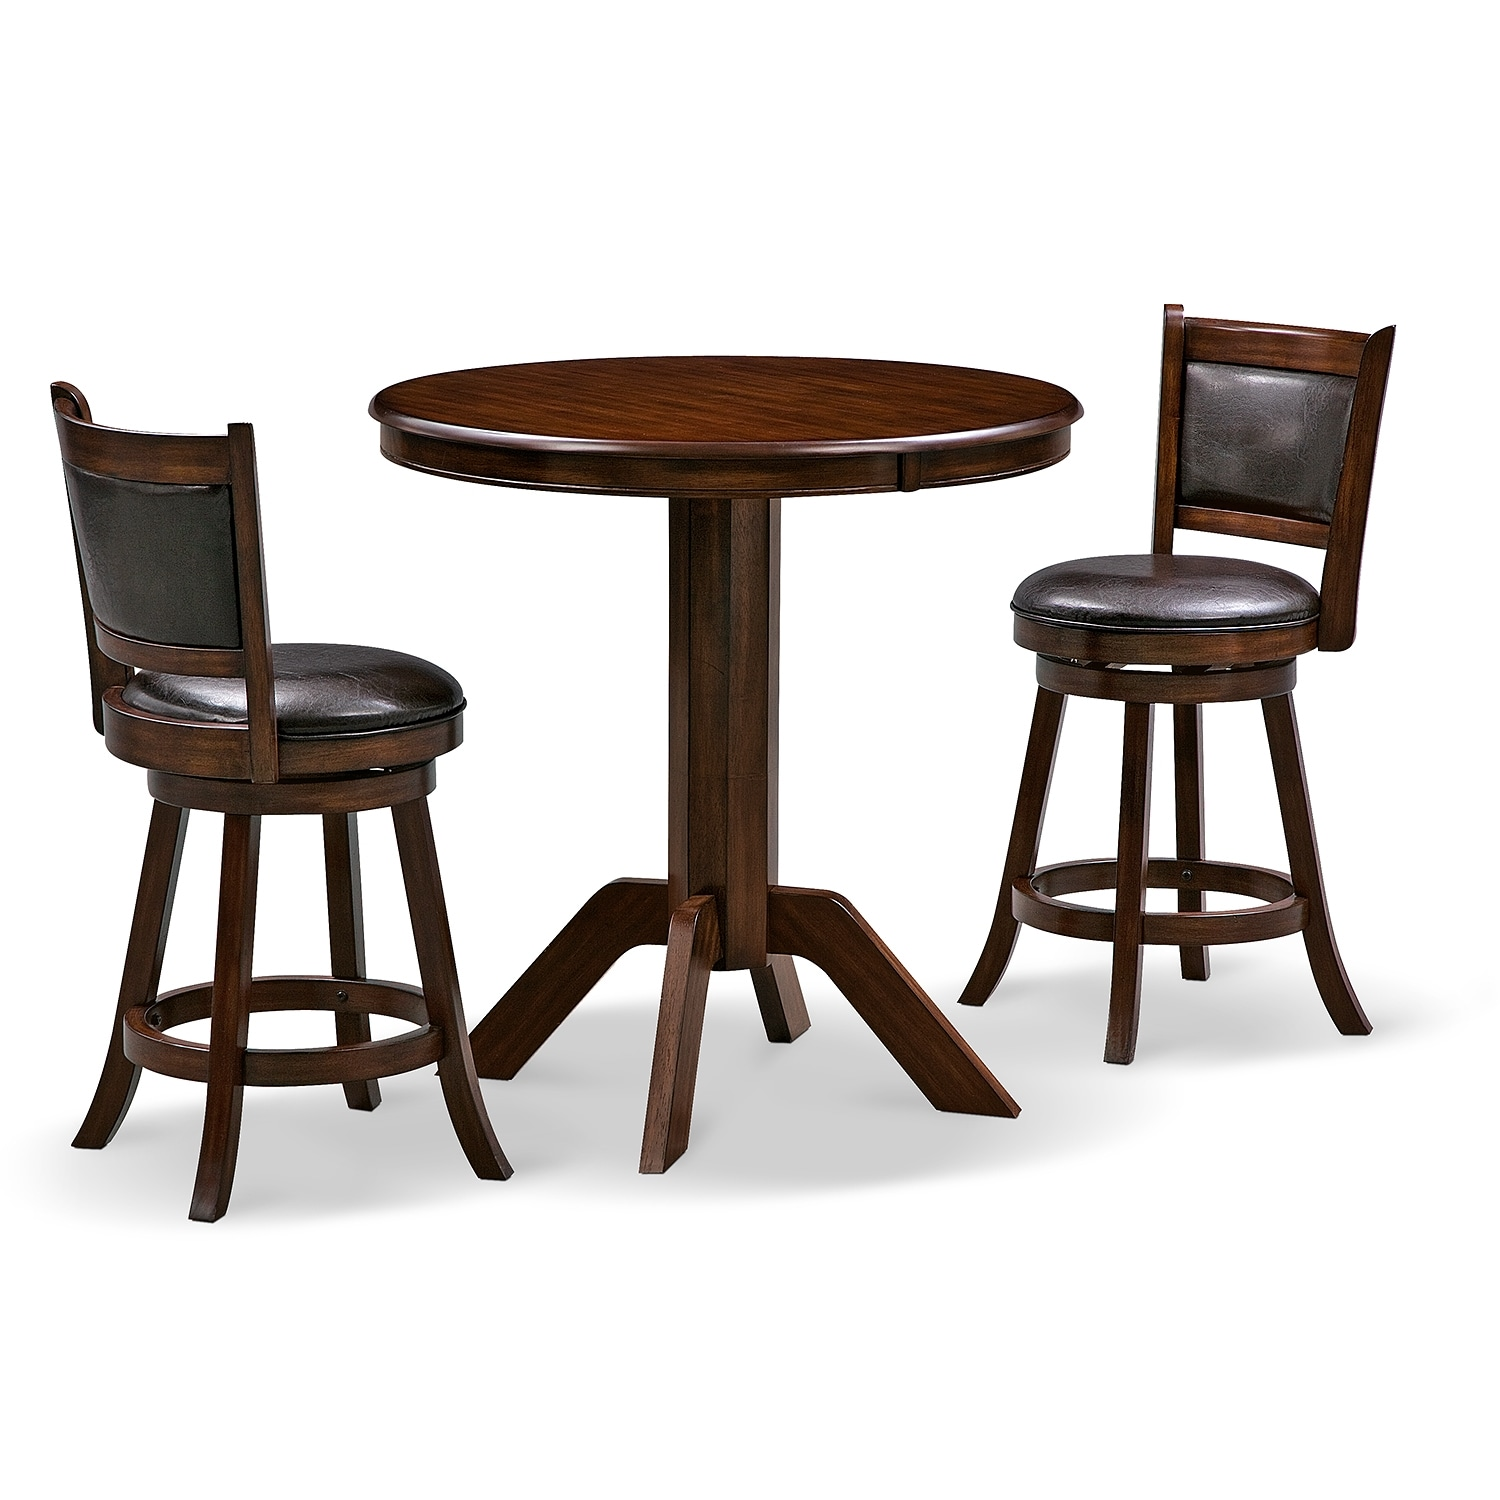 Dining Room Furniture - Concord Everly 3 Pc. Counter-Height Dinette